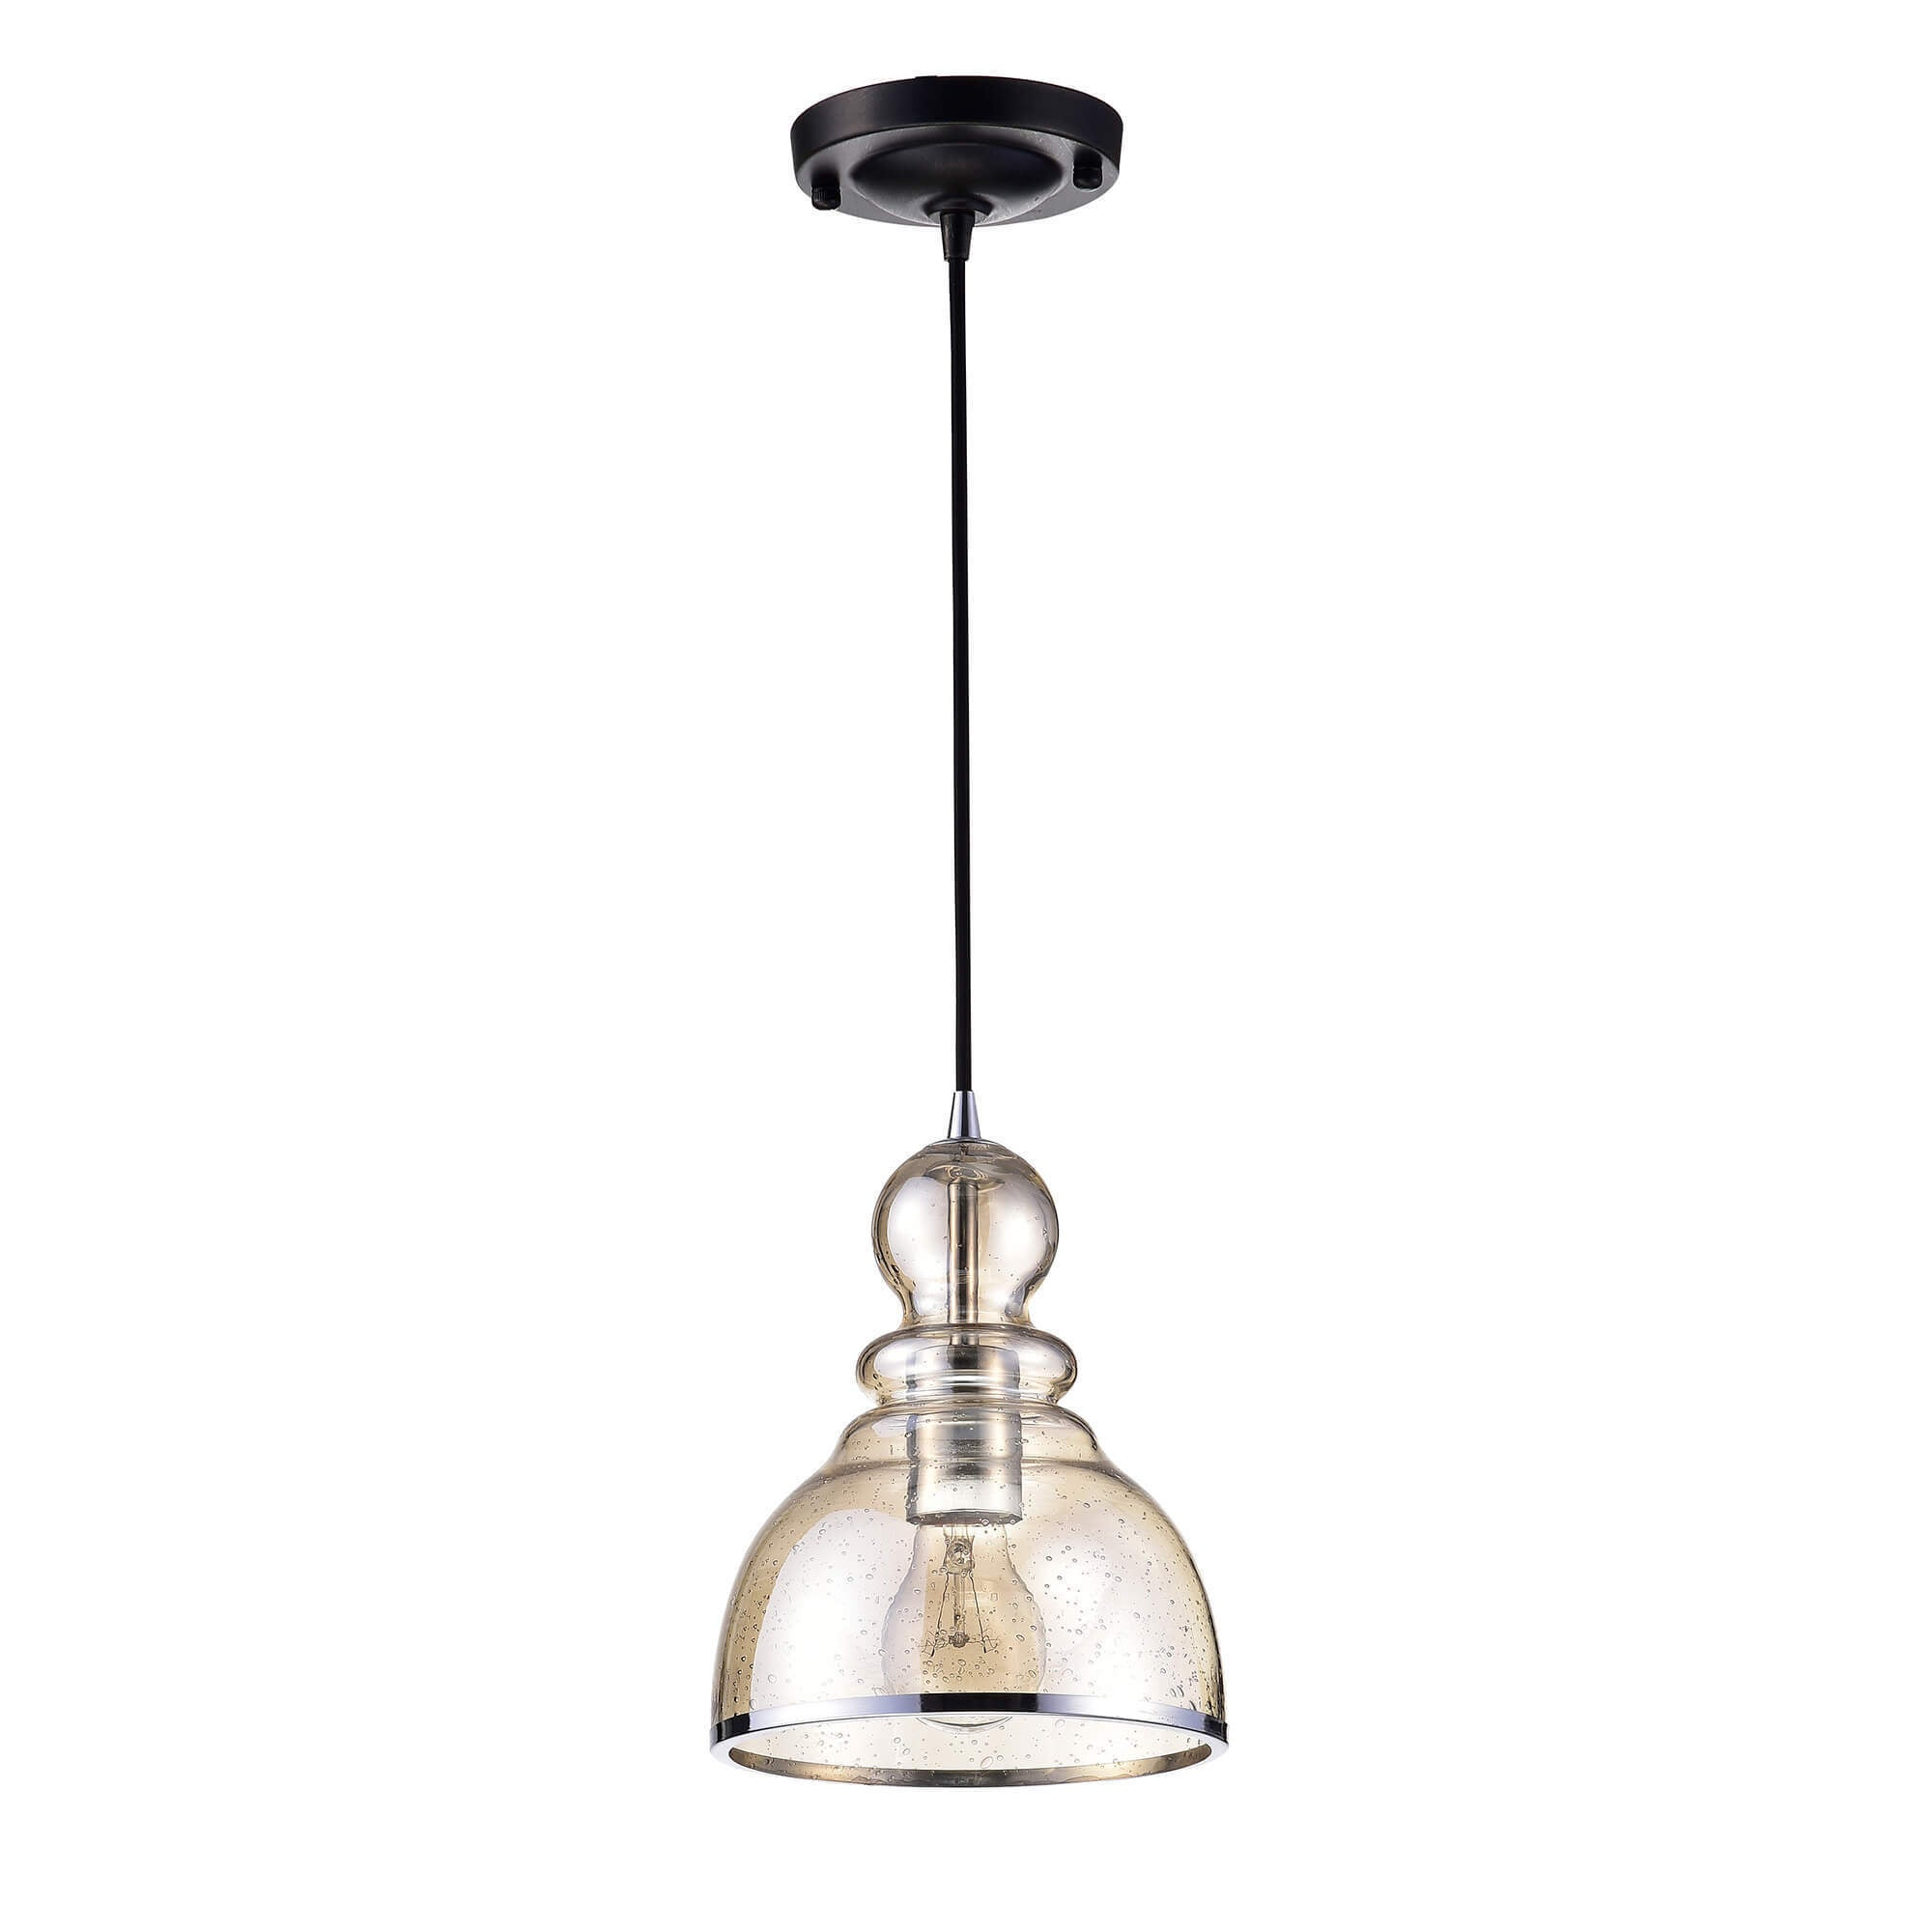 chrome led lamp fresh zephyr light mini of pendant black